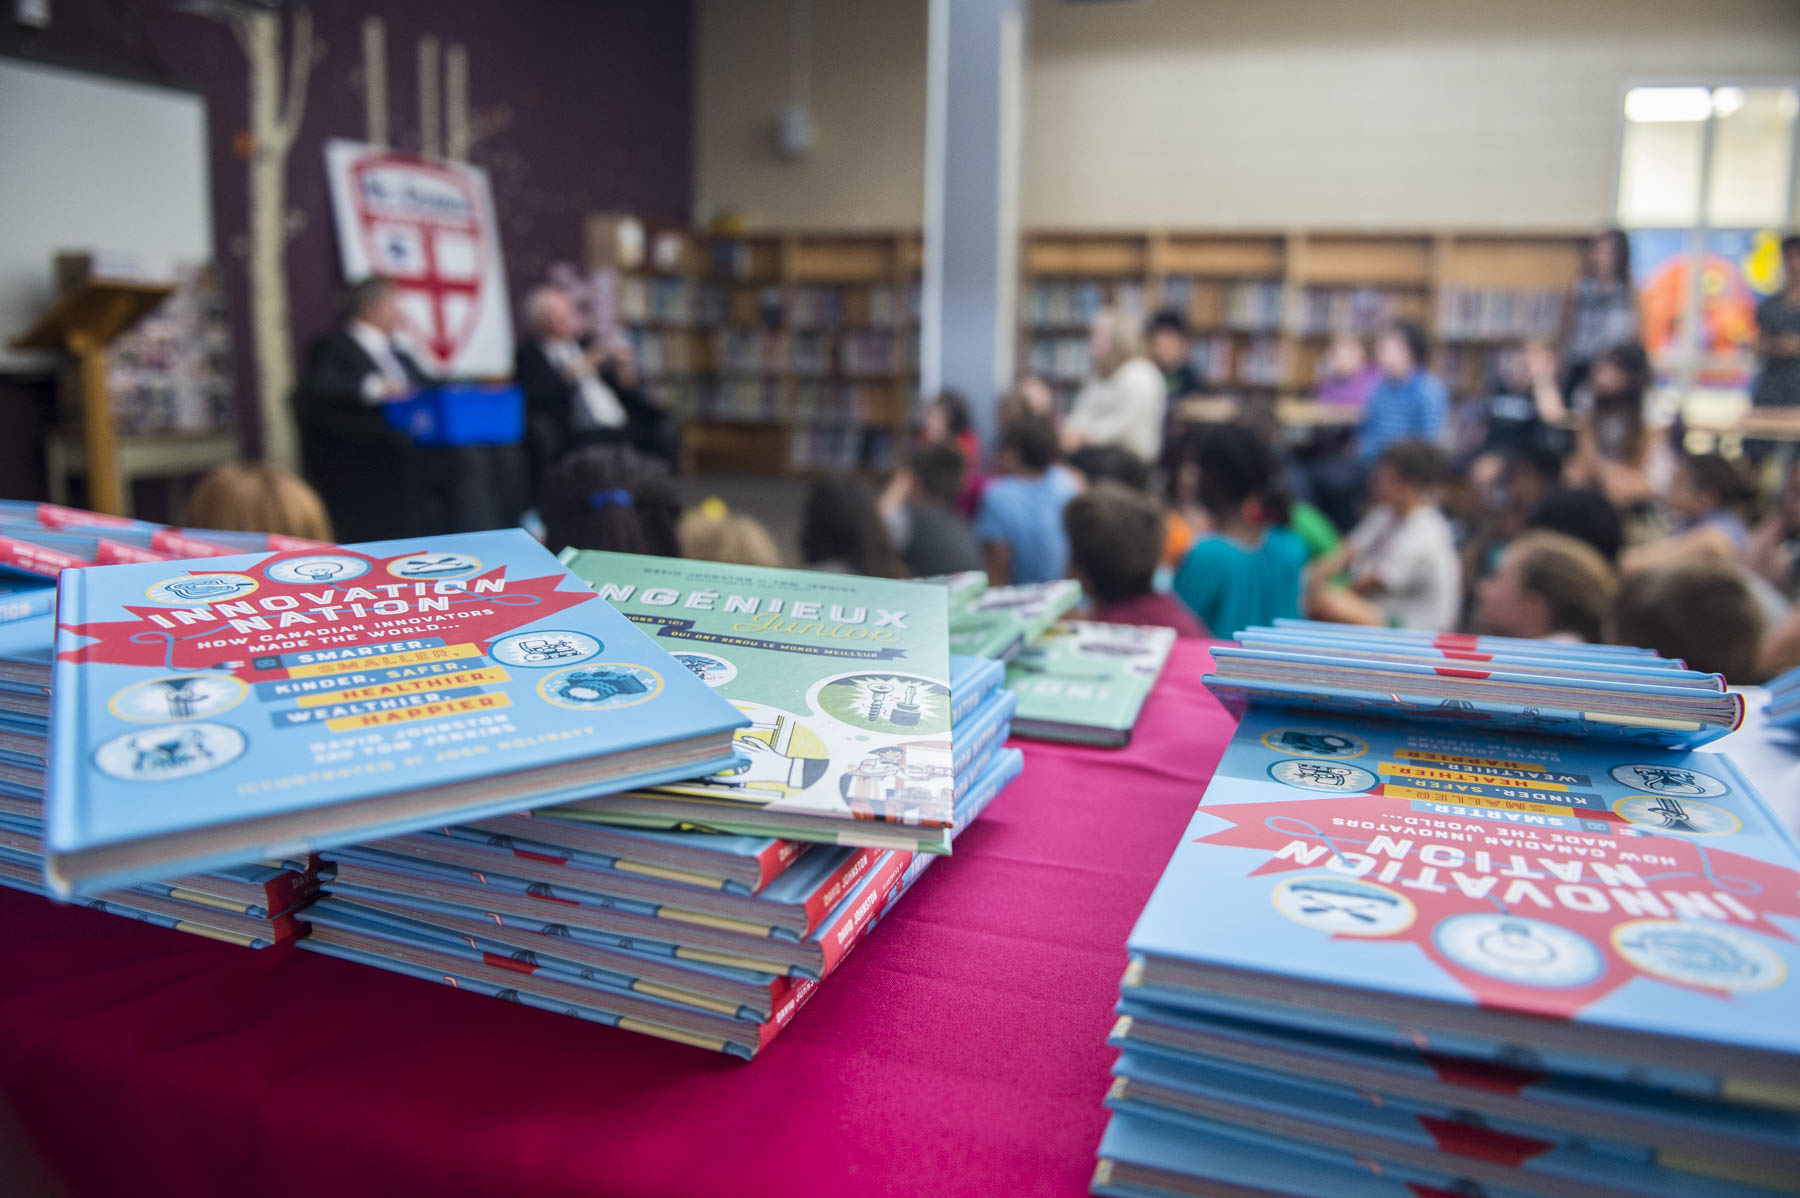 Published simultaneously in English and French by Tundra Books (division of Penguin Random House Canada) and Les Éditions La Presse, and illustrated by Mr. Josh Holinaty, this young readers' edition of Ingenious focuses on 50 kid-friendly Canadian innovations that changed the world, from canoes to whoopee cushions, chocolate bars to zippers. It will be a valuable resource for teachers who want to inspire their students to become innovators.